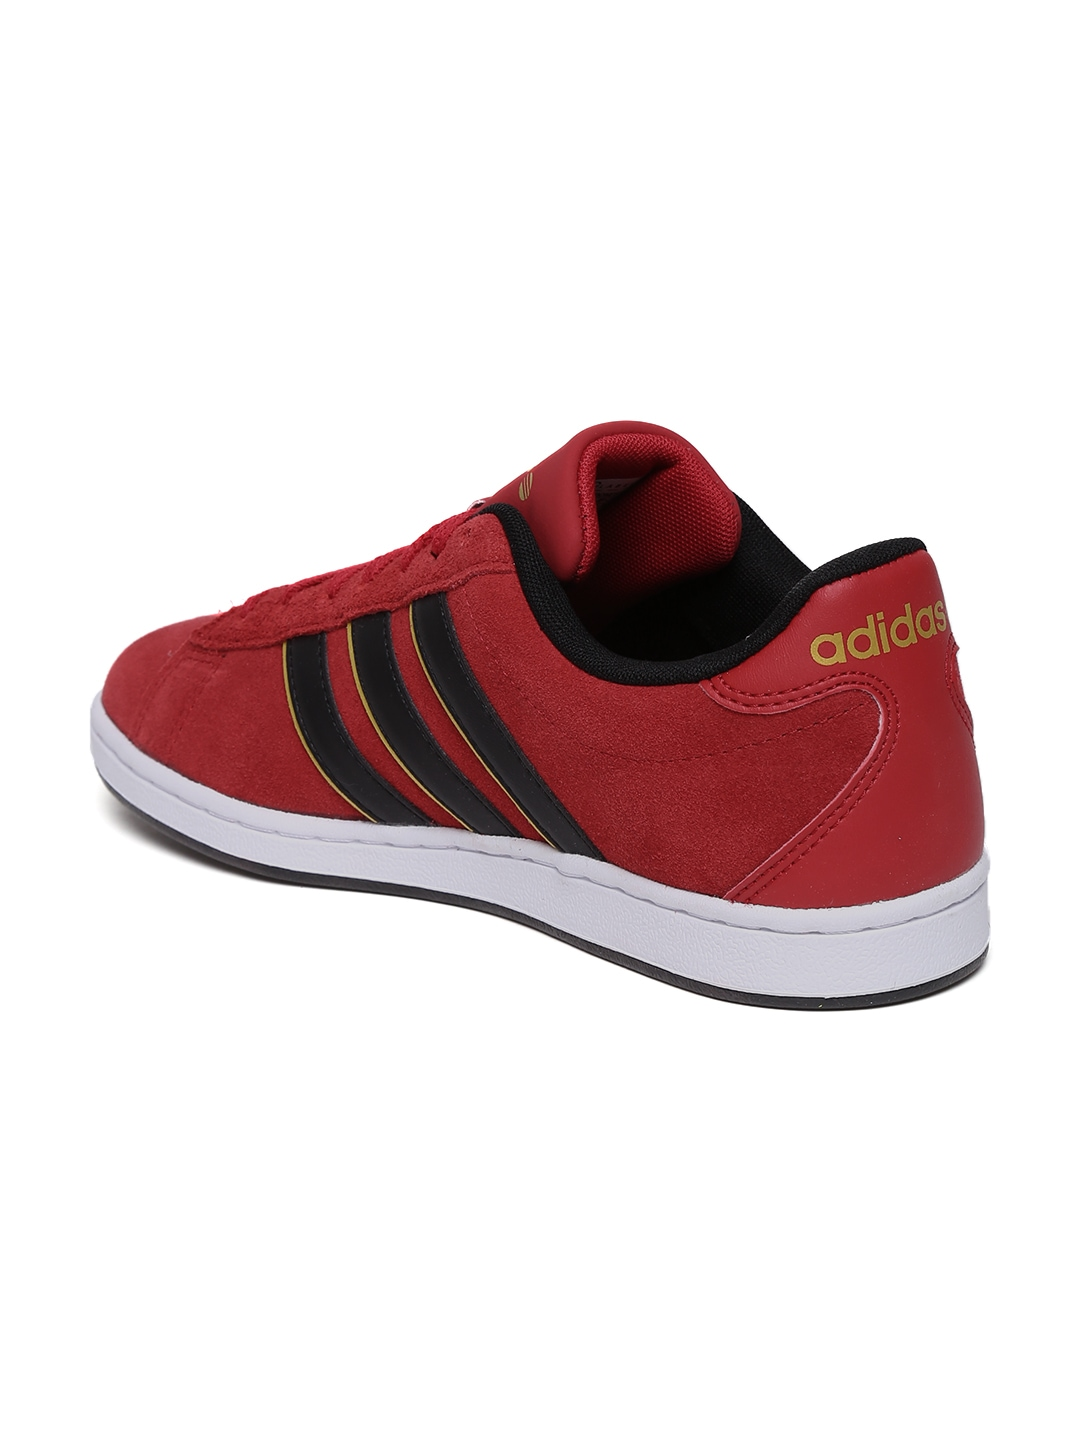 Adidas Fox Red Shoes